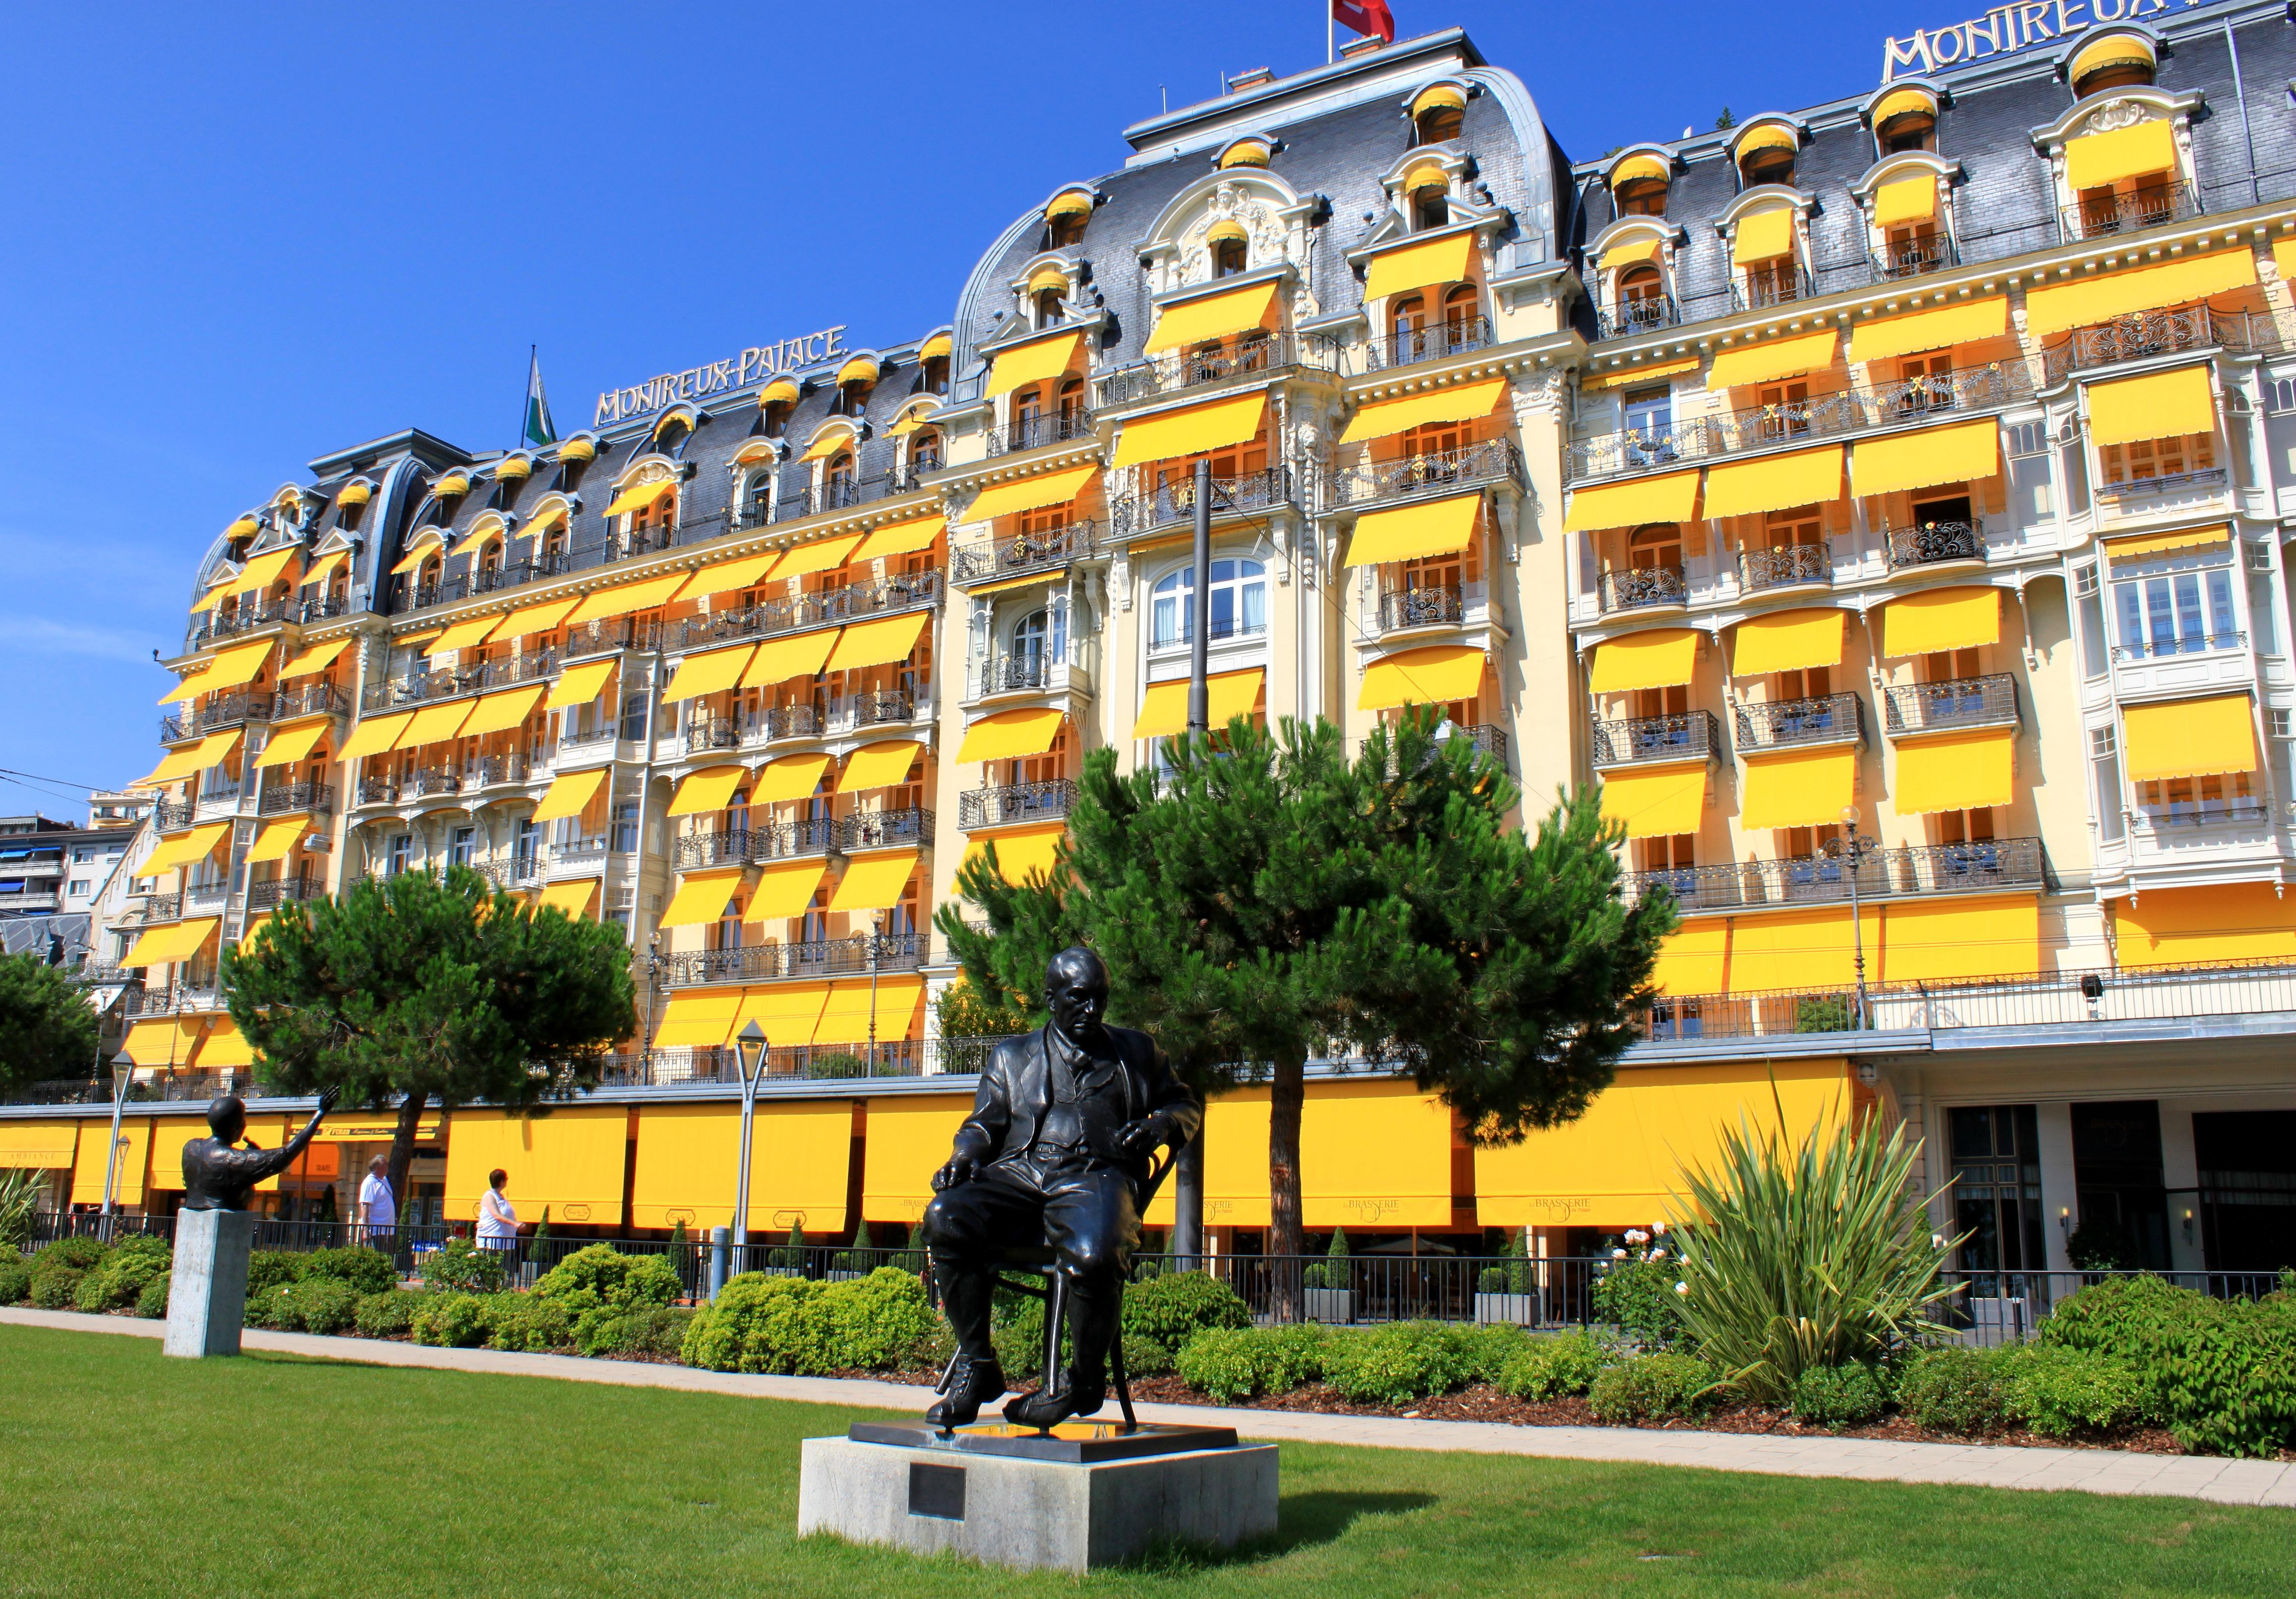 Fairmont Montreux Hotel Switzerland What Brand Of Beds